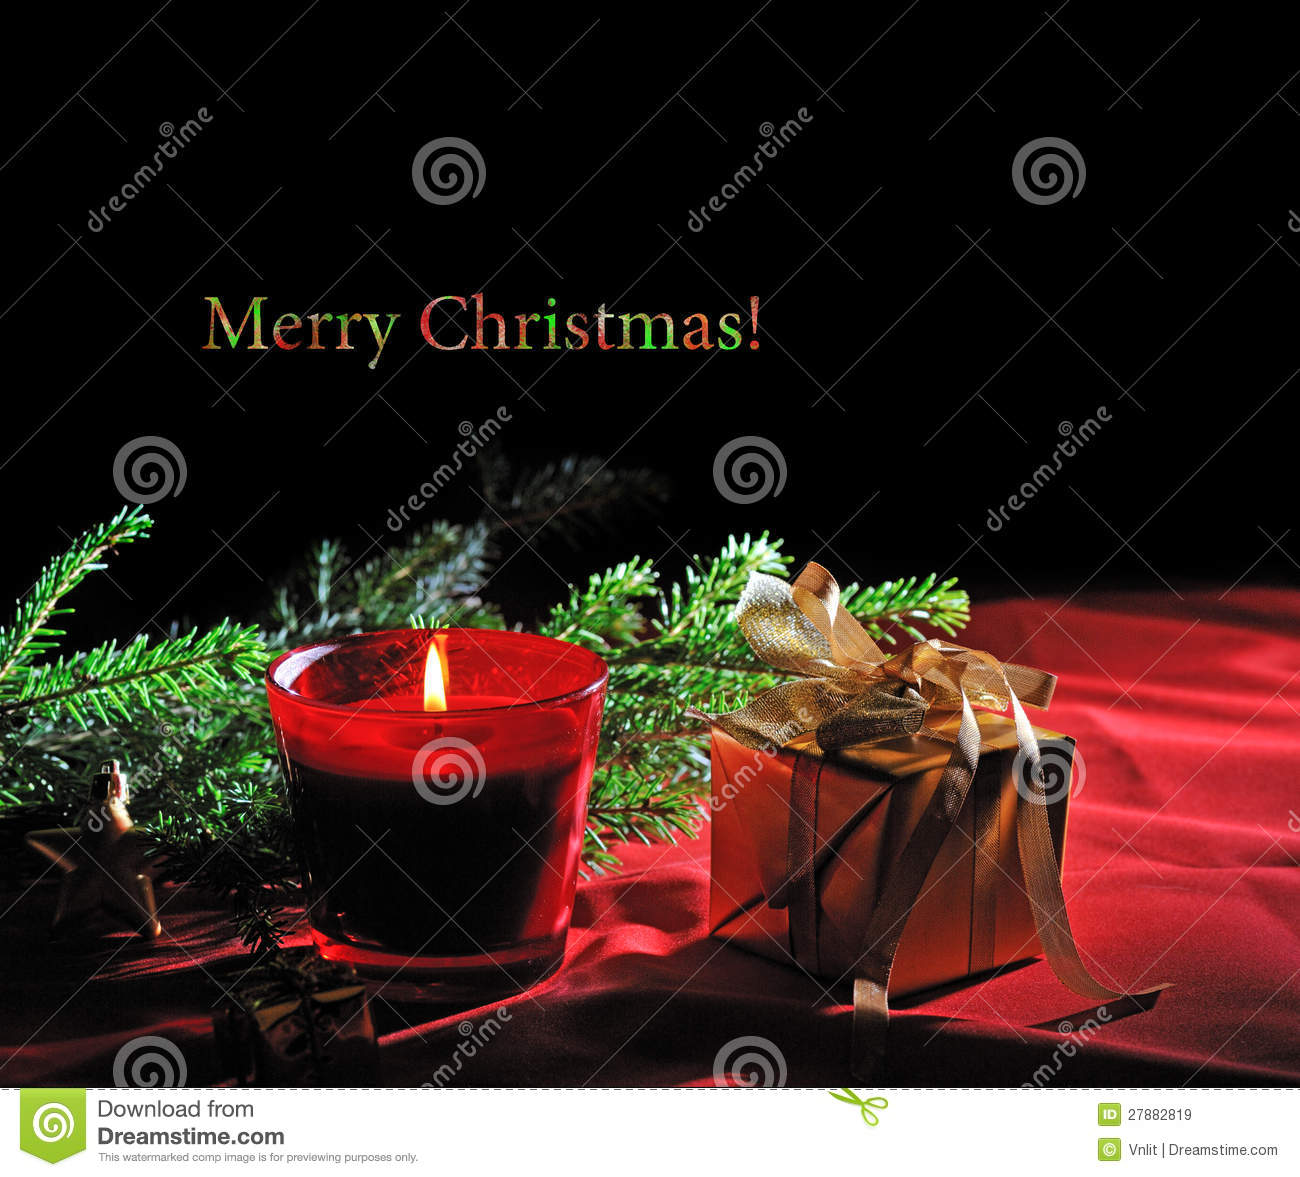 #AA2126 Christmas Decoration Royalty Free Stock Images Image  6361 décoration noel commerce 1300x1177 px @ aertt.com